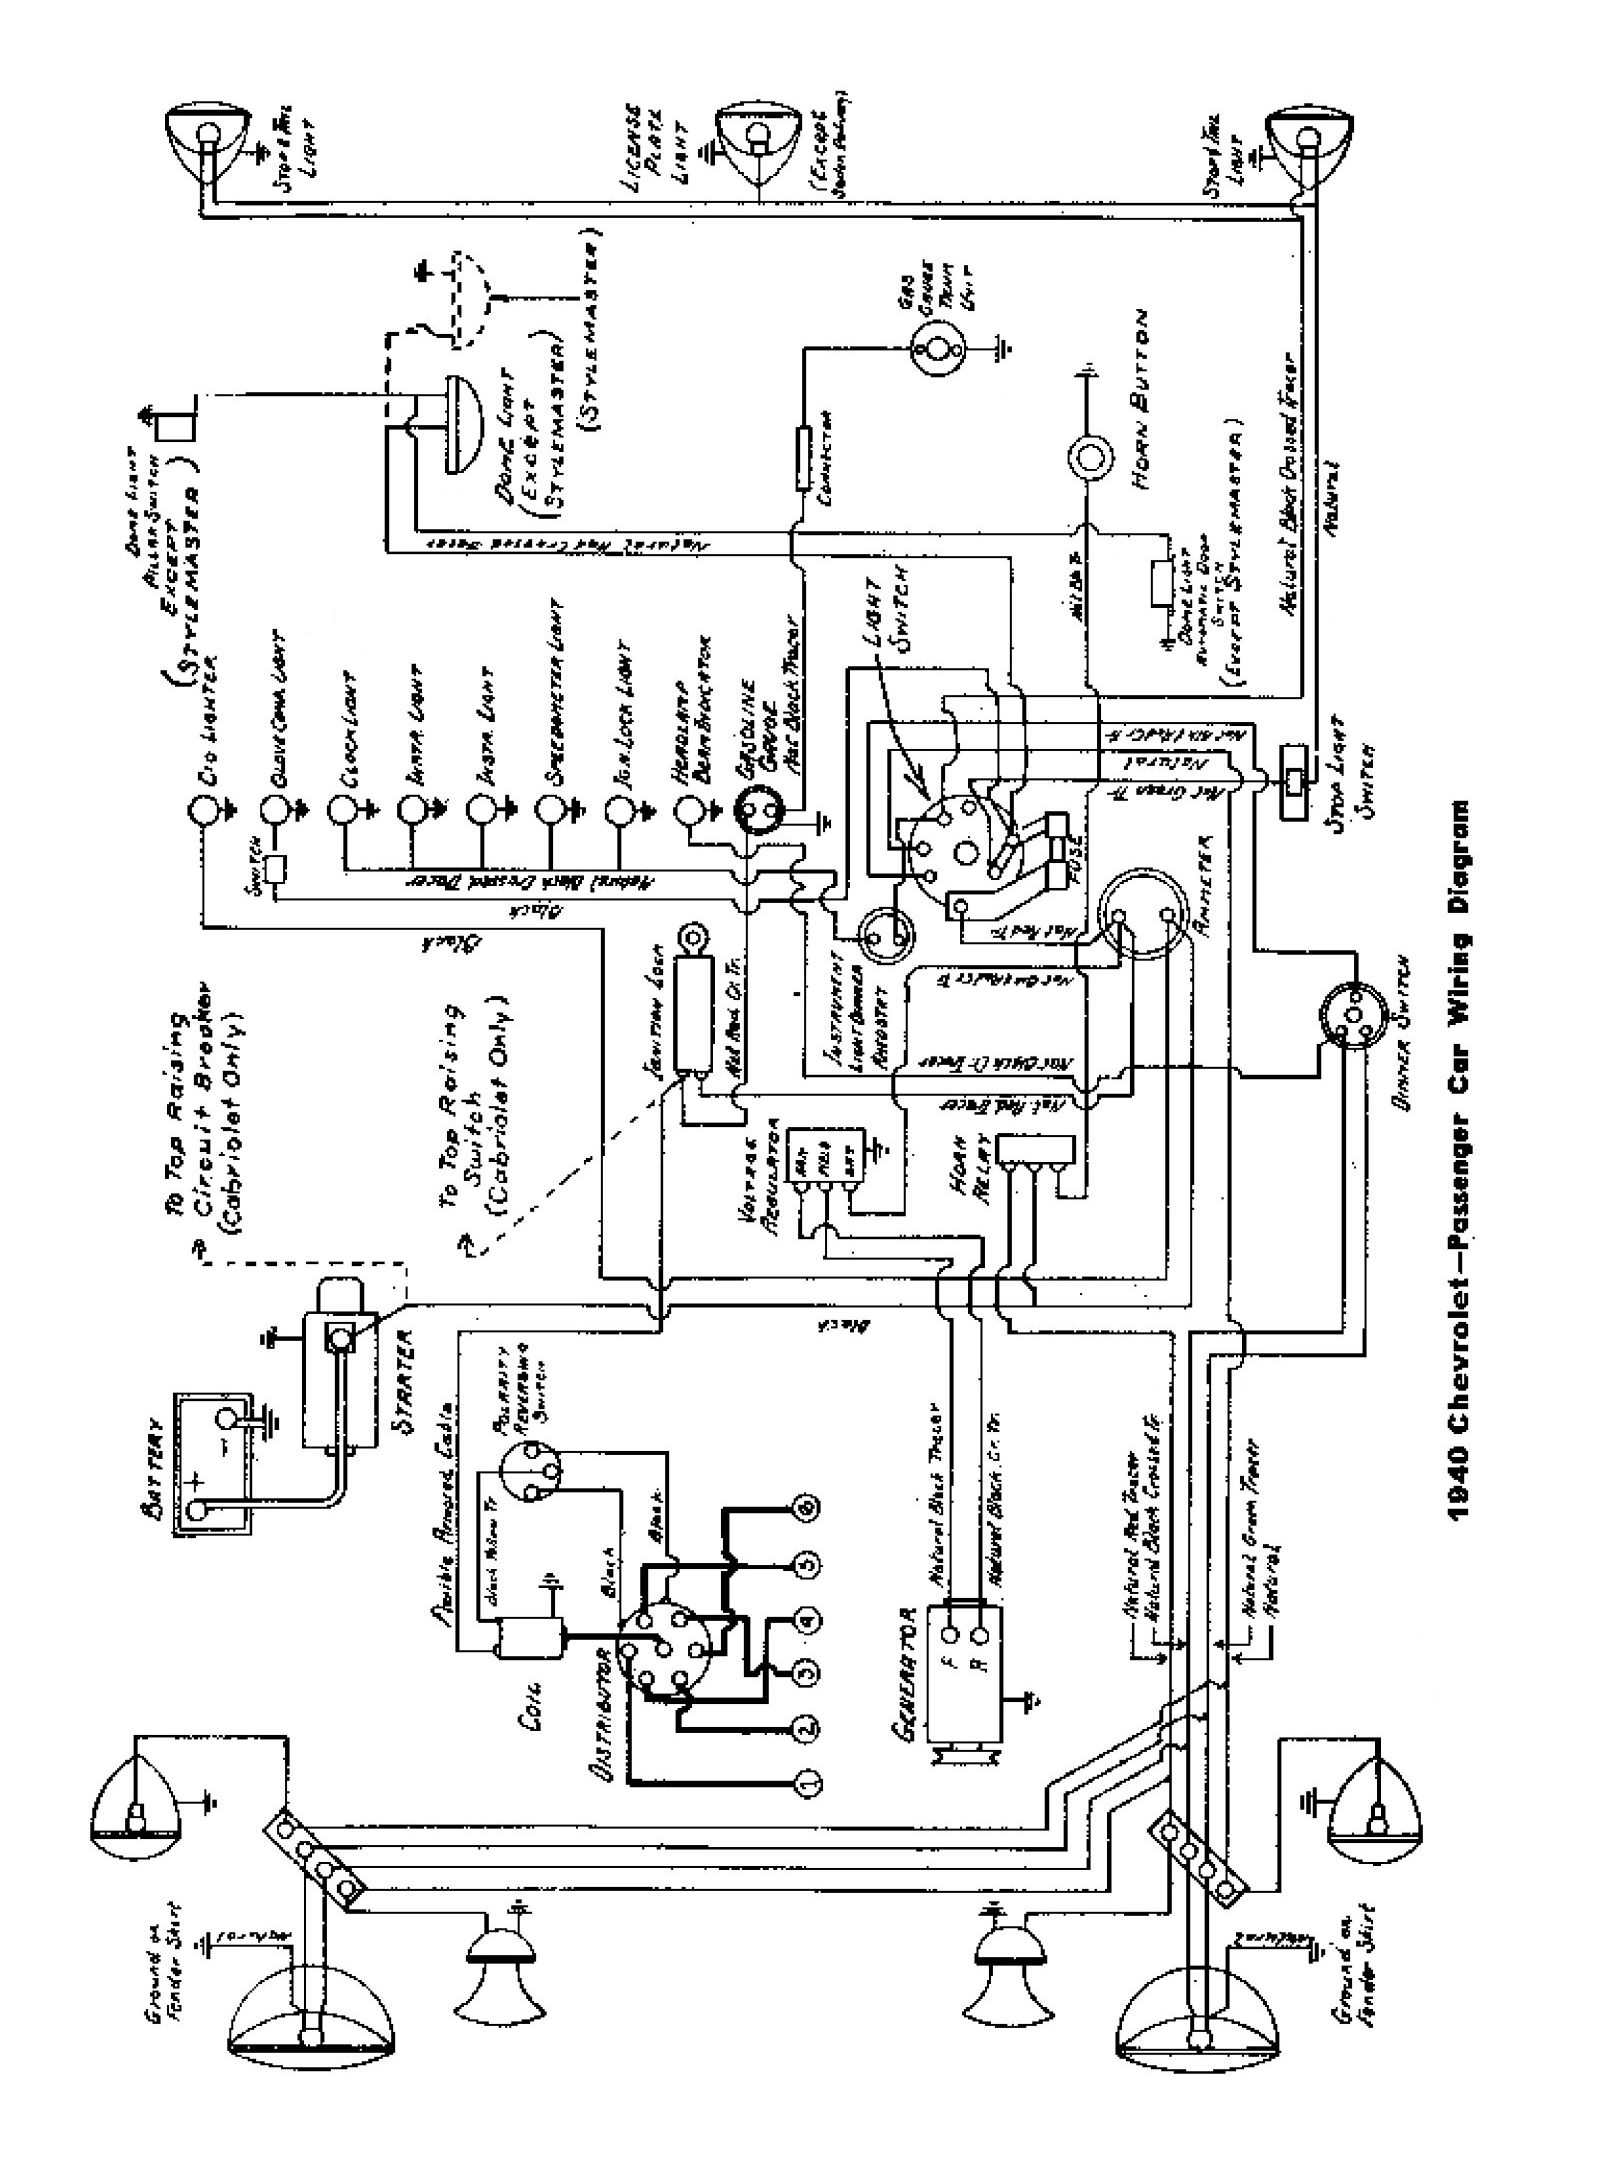 1936 chevy truck wiring diagram ae86 radio 1942 harness get free image about